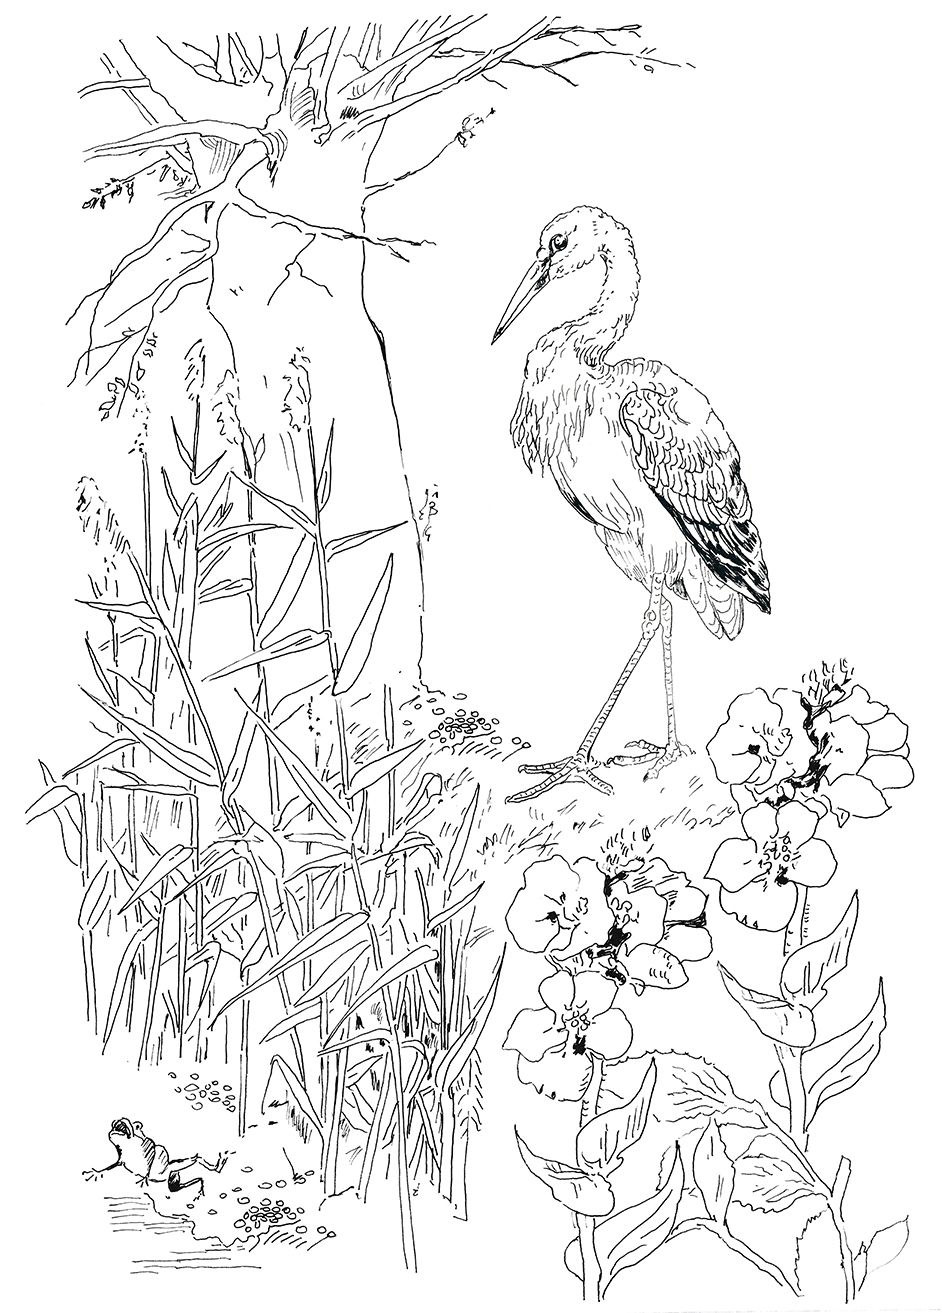 Pippa Rossi Lost Garden Stork And Frog Jpg 942 1313 Frog Coloring Pages Art Lessons Art Instructions